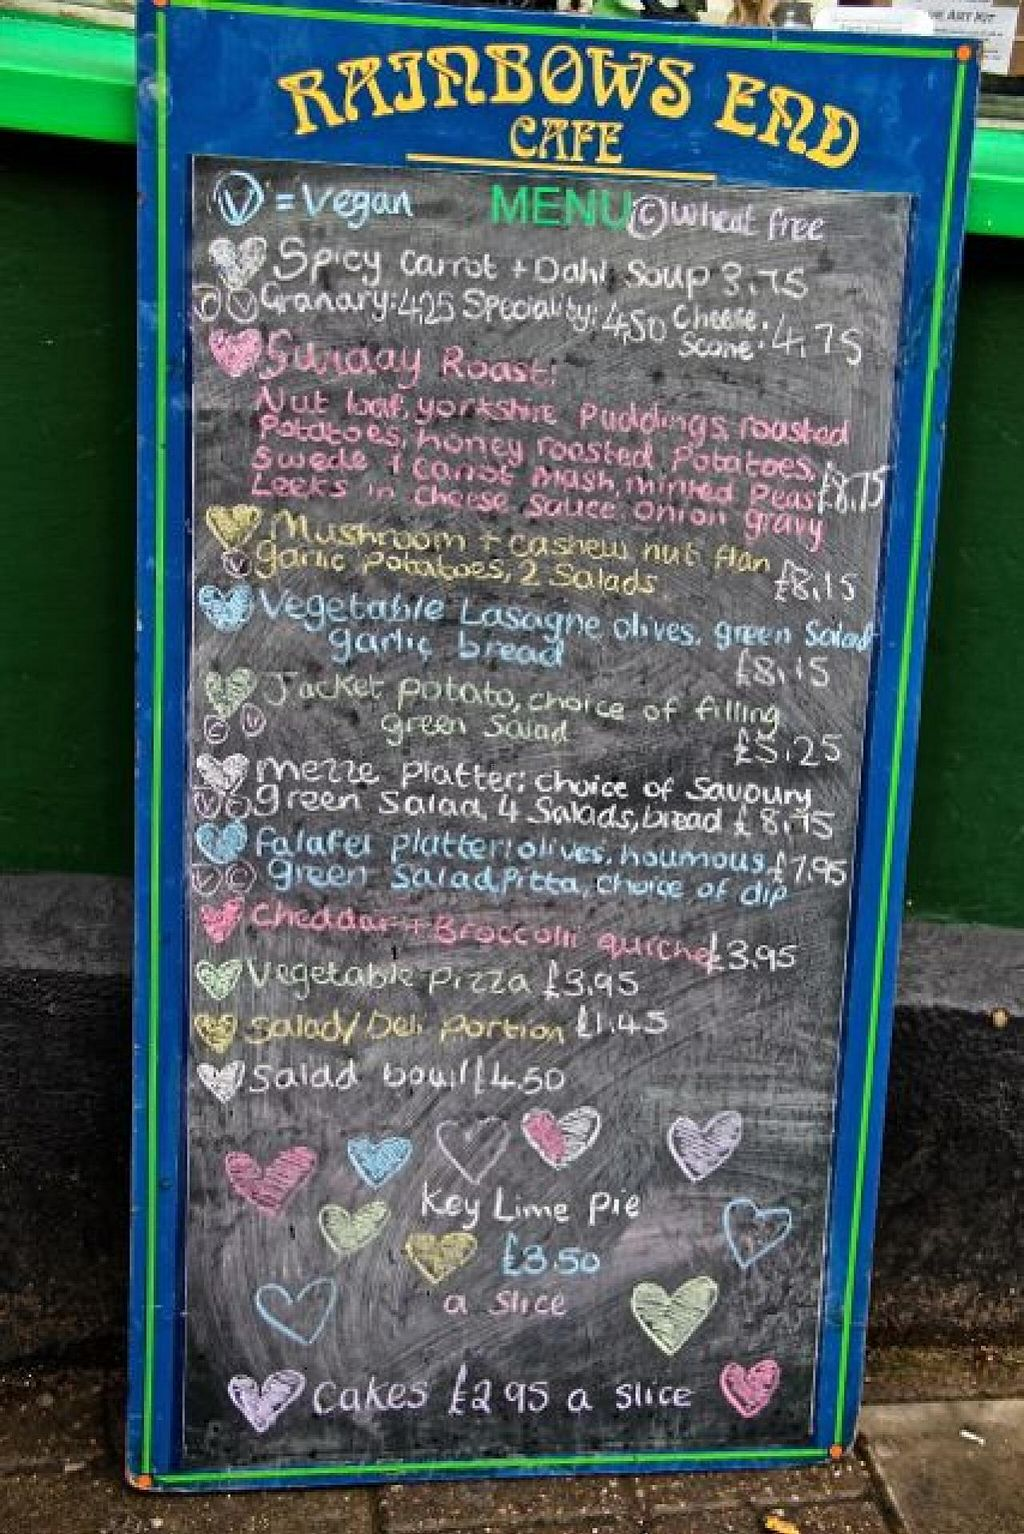 """Photo of Rainbows End Cafe  by <a href=""""/members/profile/trinitybourne"""">trinitybourne</a> <br/>The menu board changes although it has regular choices that are always available. This was the menu on 9th Feb 2014 <br/> February 9, 2014  - <a href='/contact/abuse/image/5099/64011'>Report</a>"""